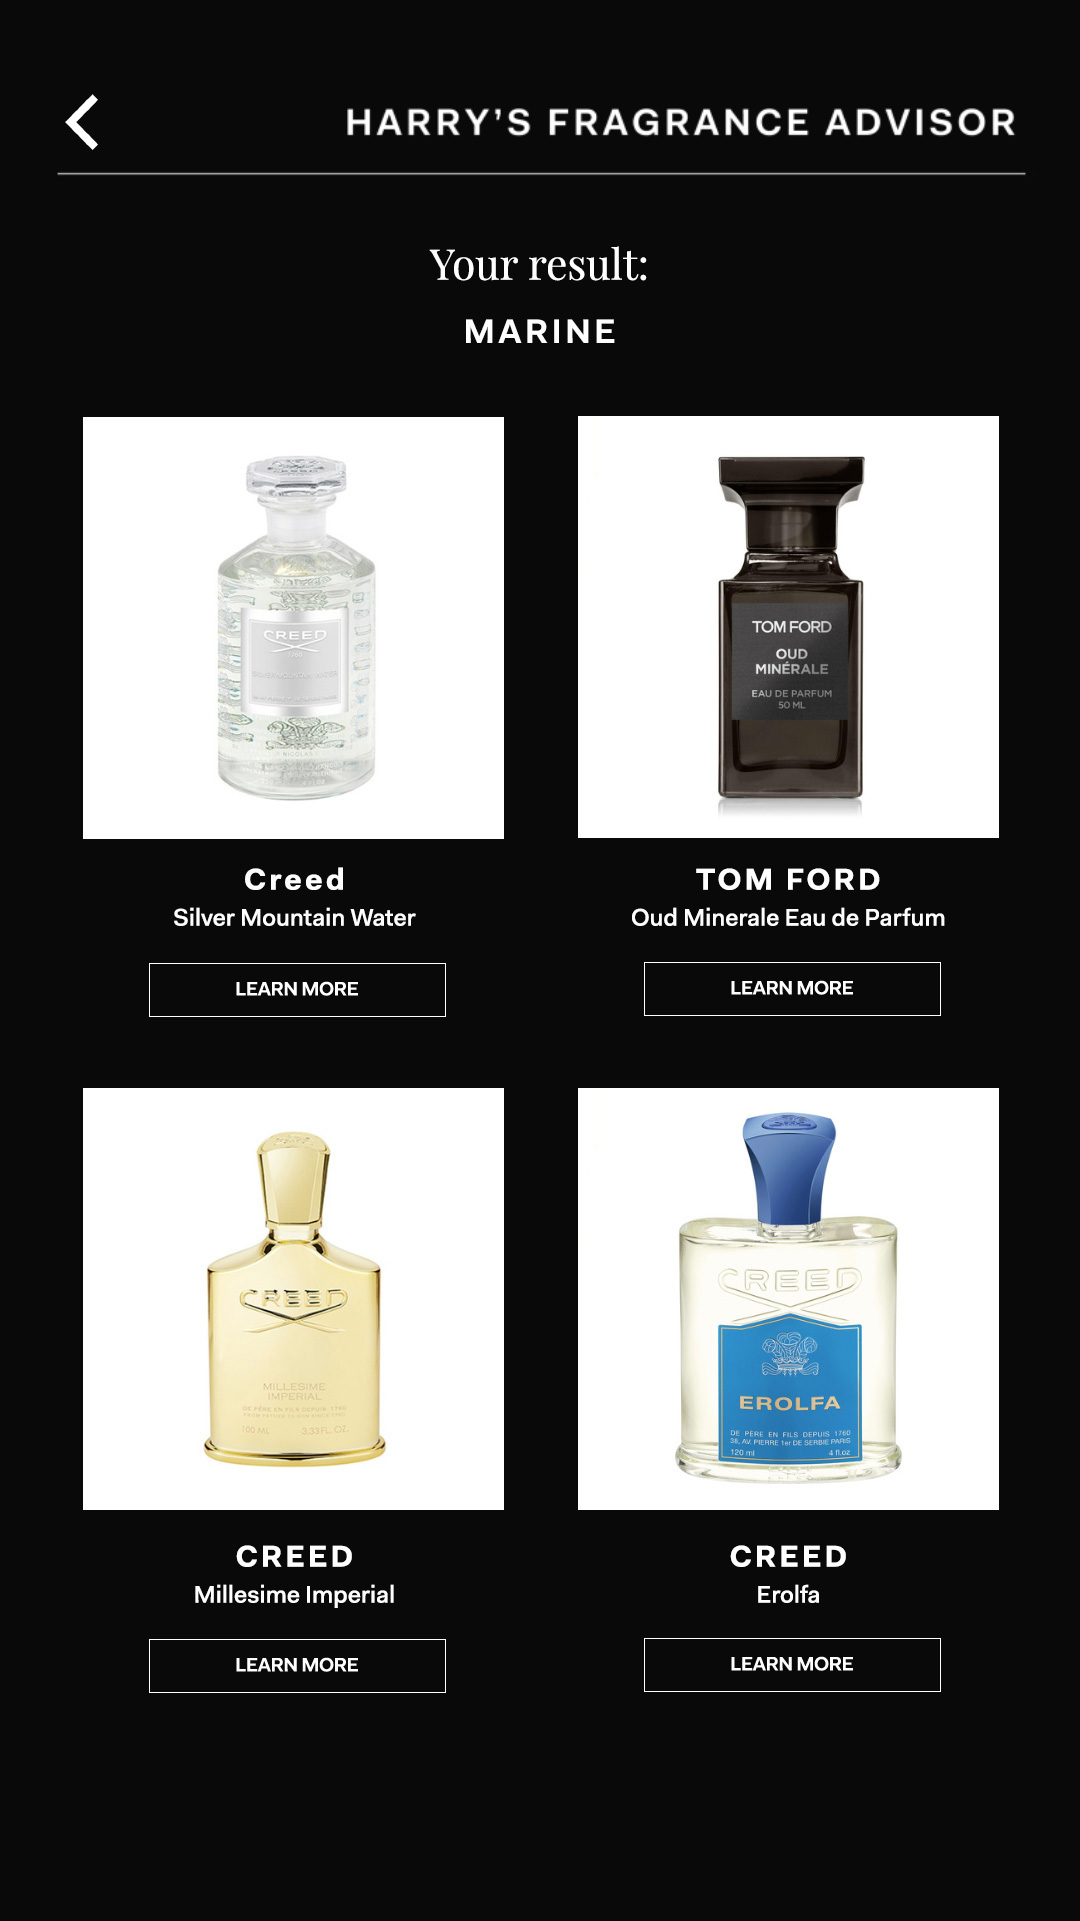 harrys-fragrance-advisor-marine